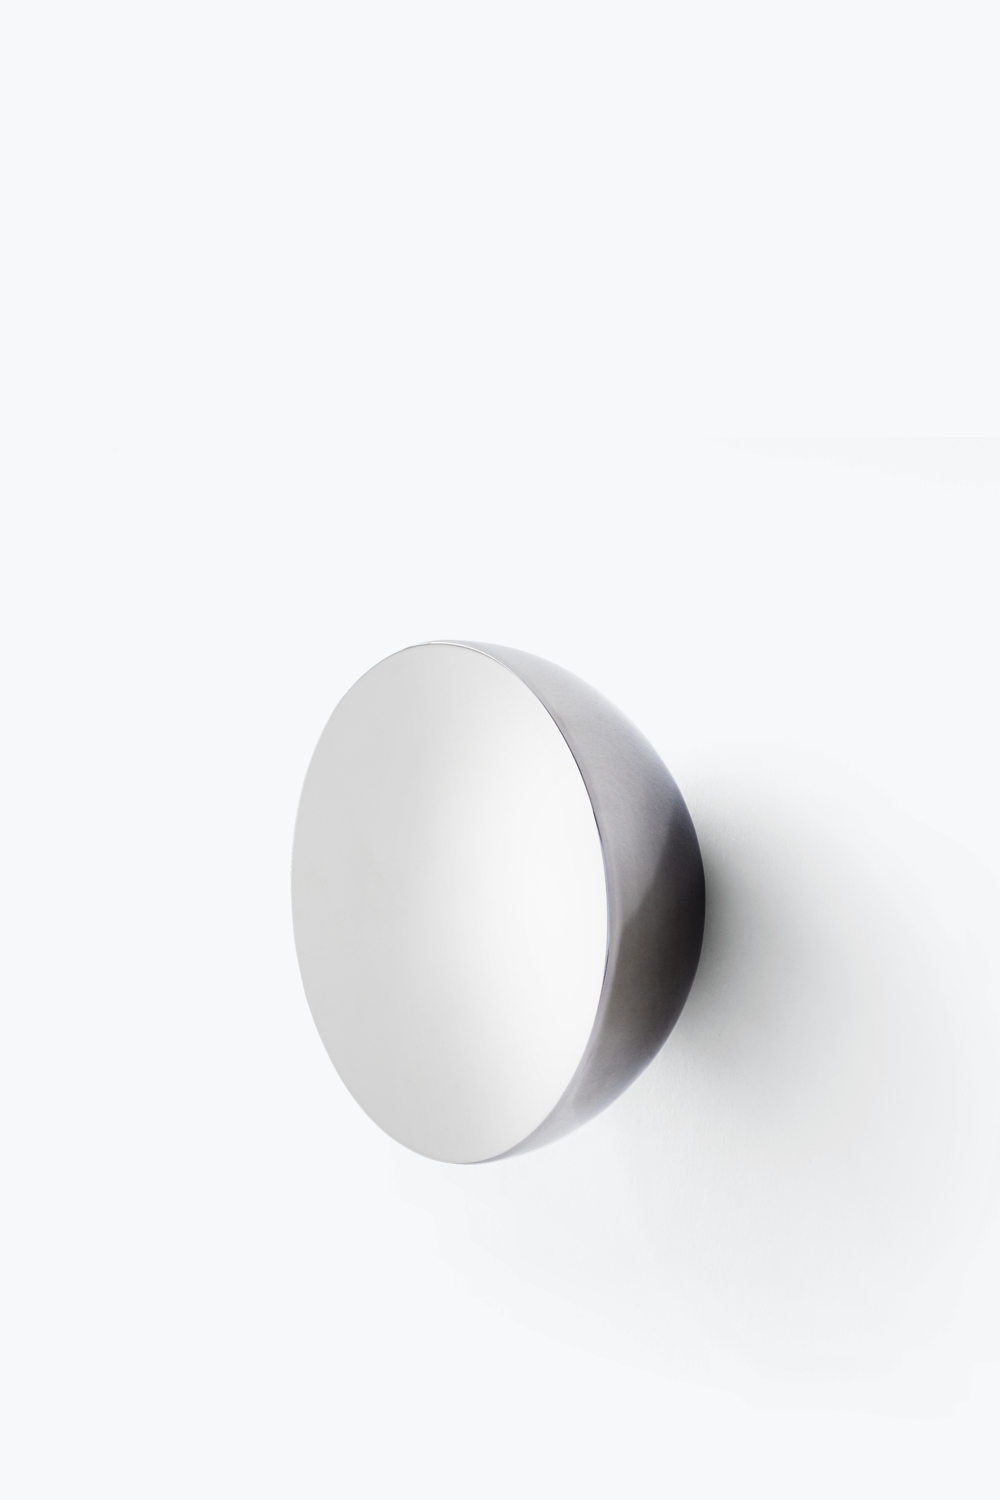 Stainless Steel Wall Mirrors Intended For Well Known Aura Wall Mirror – Stainless Steel, Large — New Works (View 14 of 20)